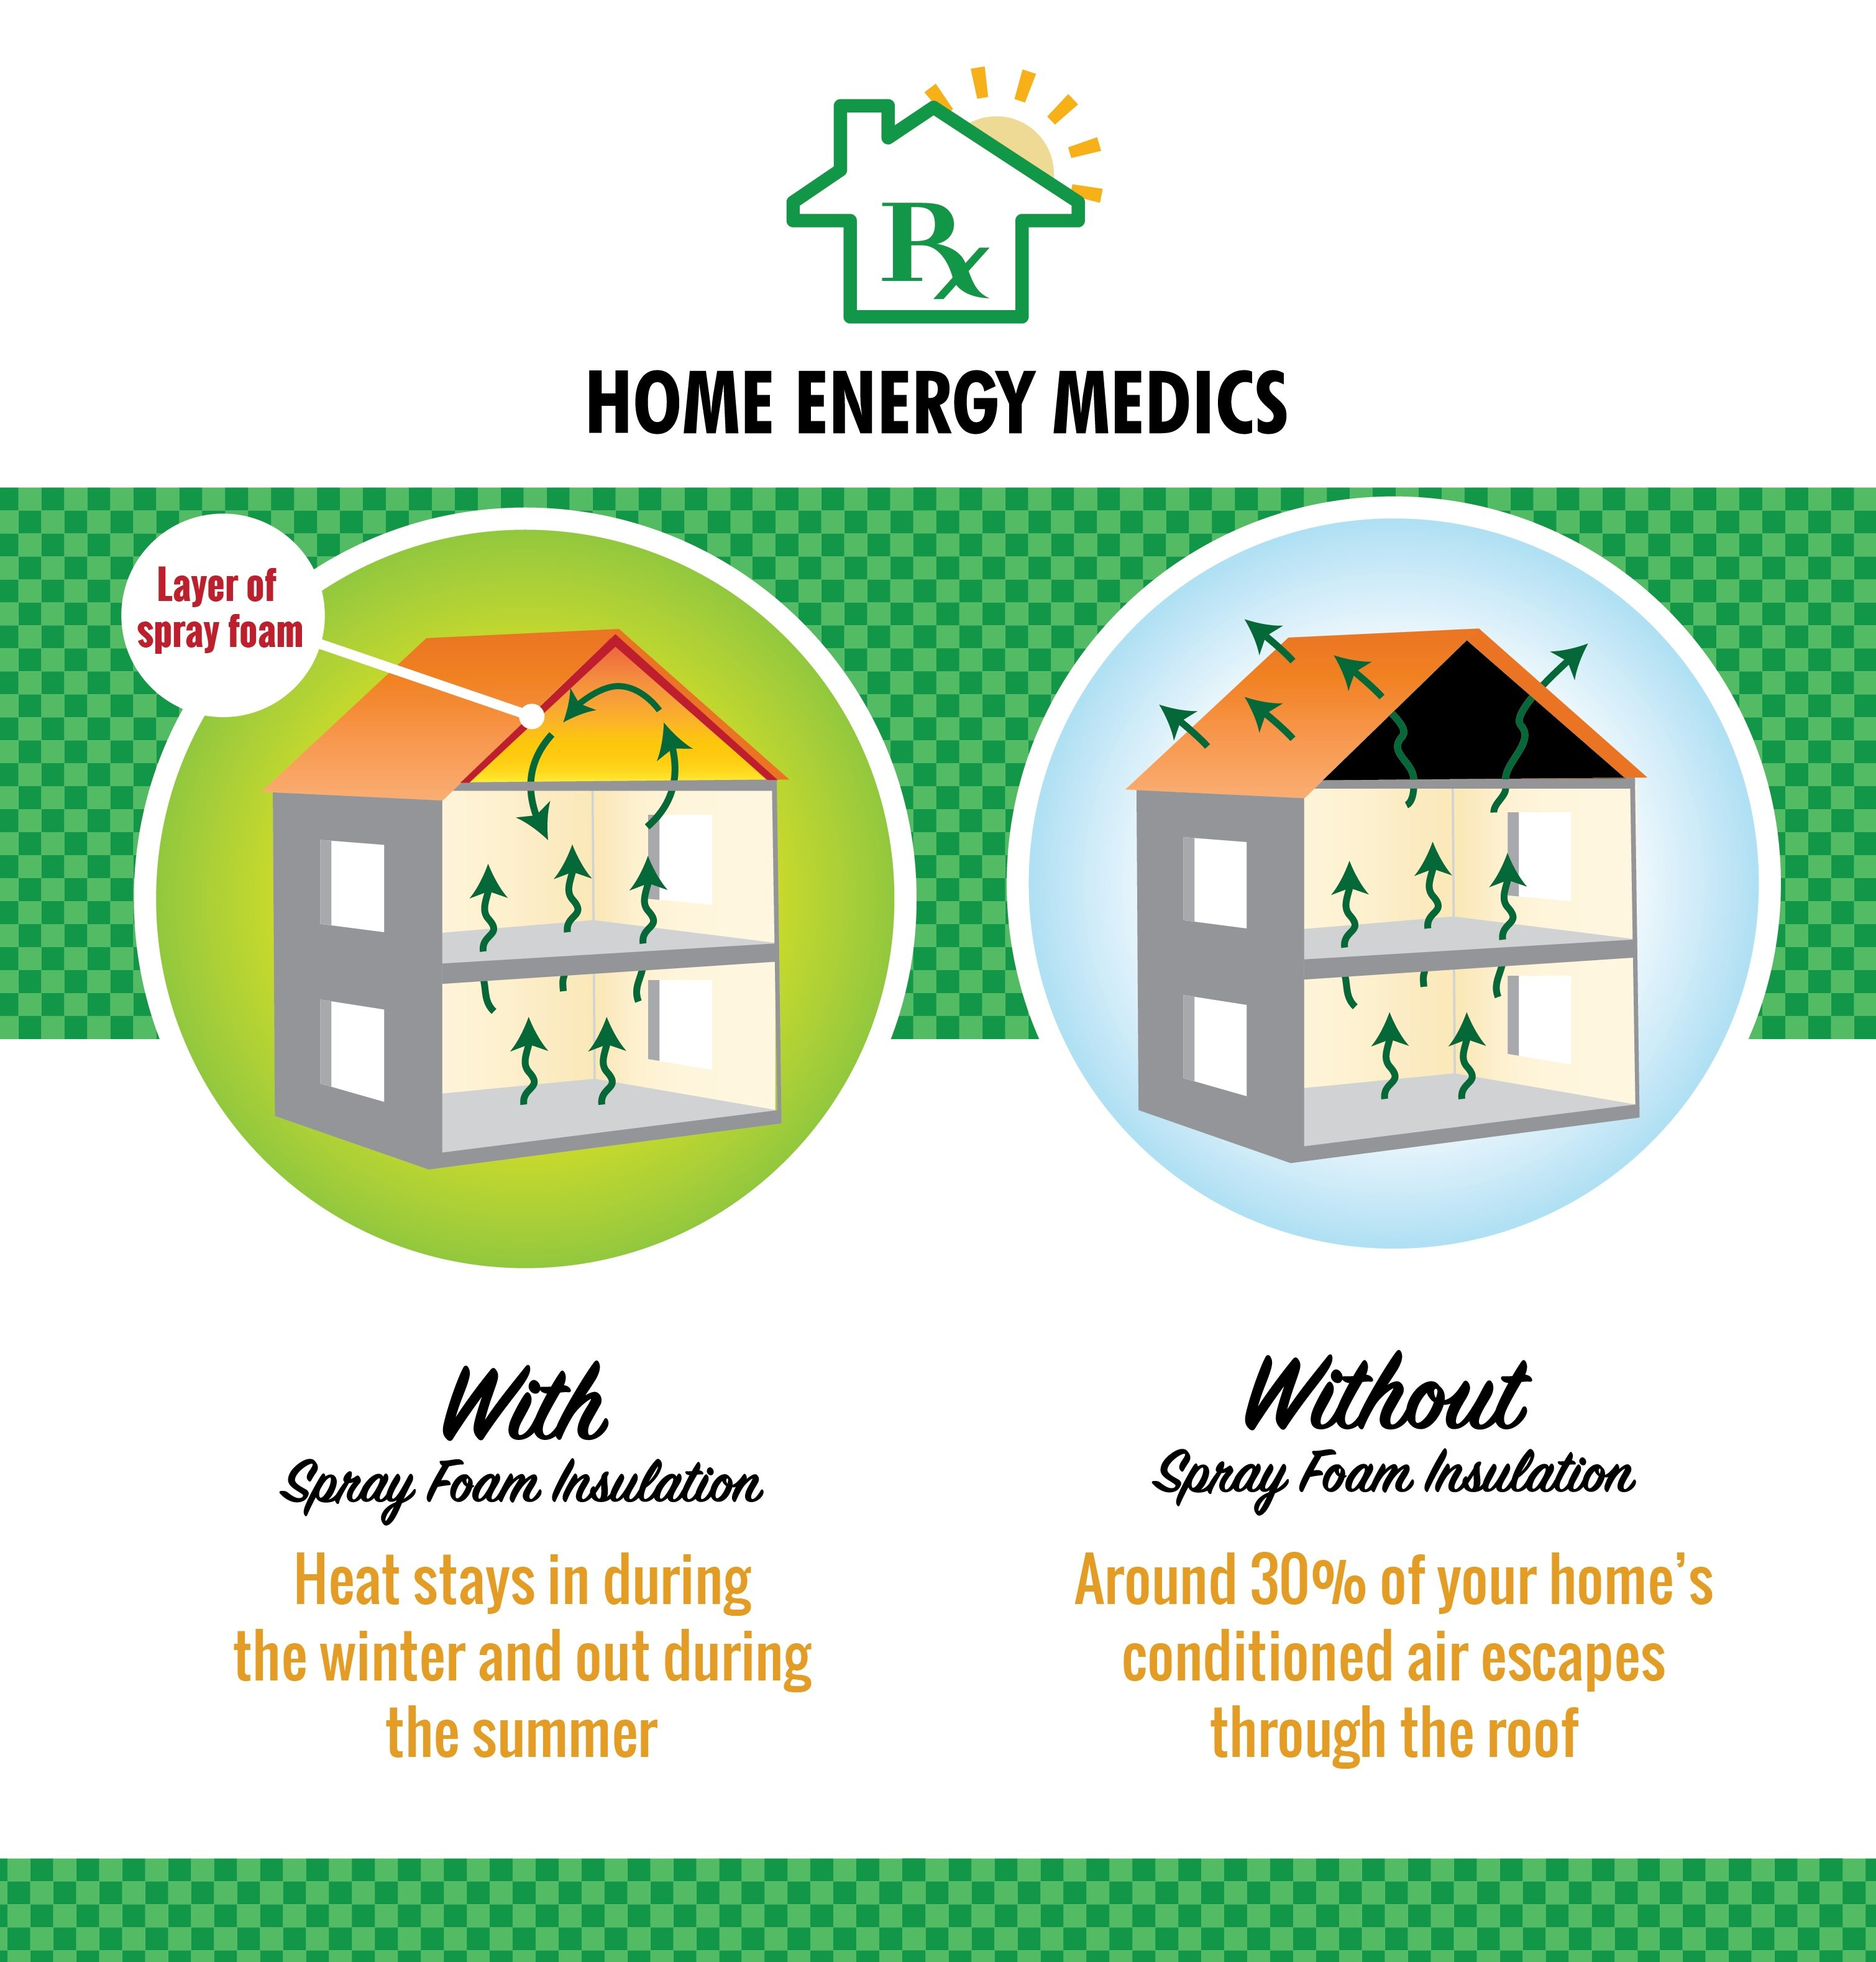 Your home with and without spray foam insulation